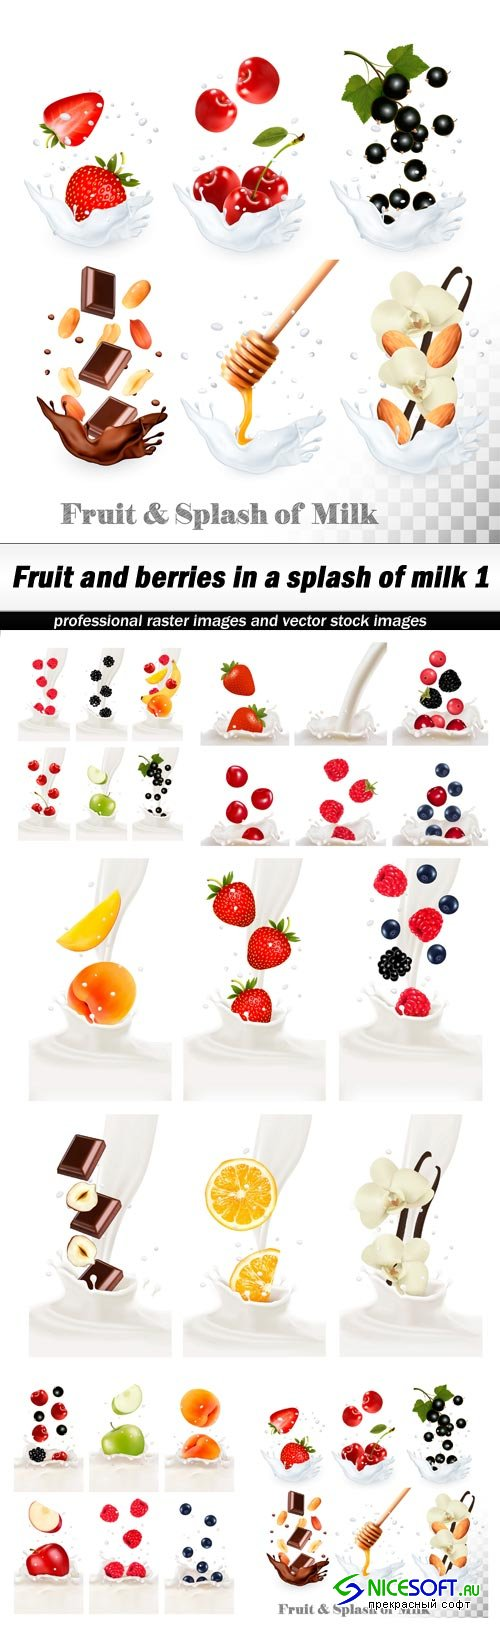 Fruit and berries in a splash of milk 1 - 5 EPS